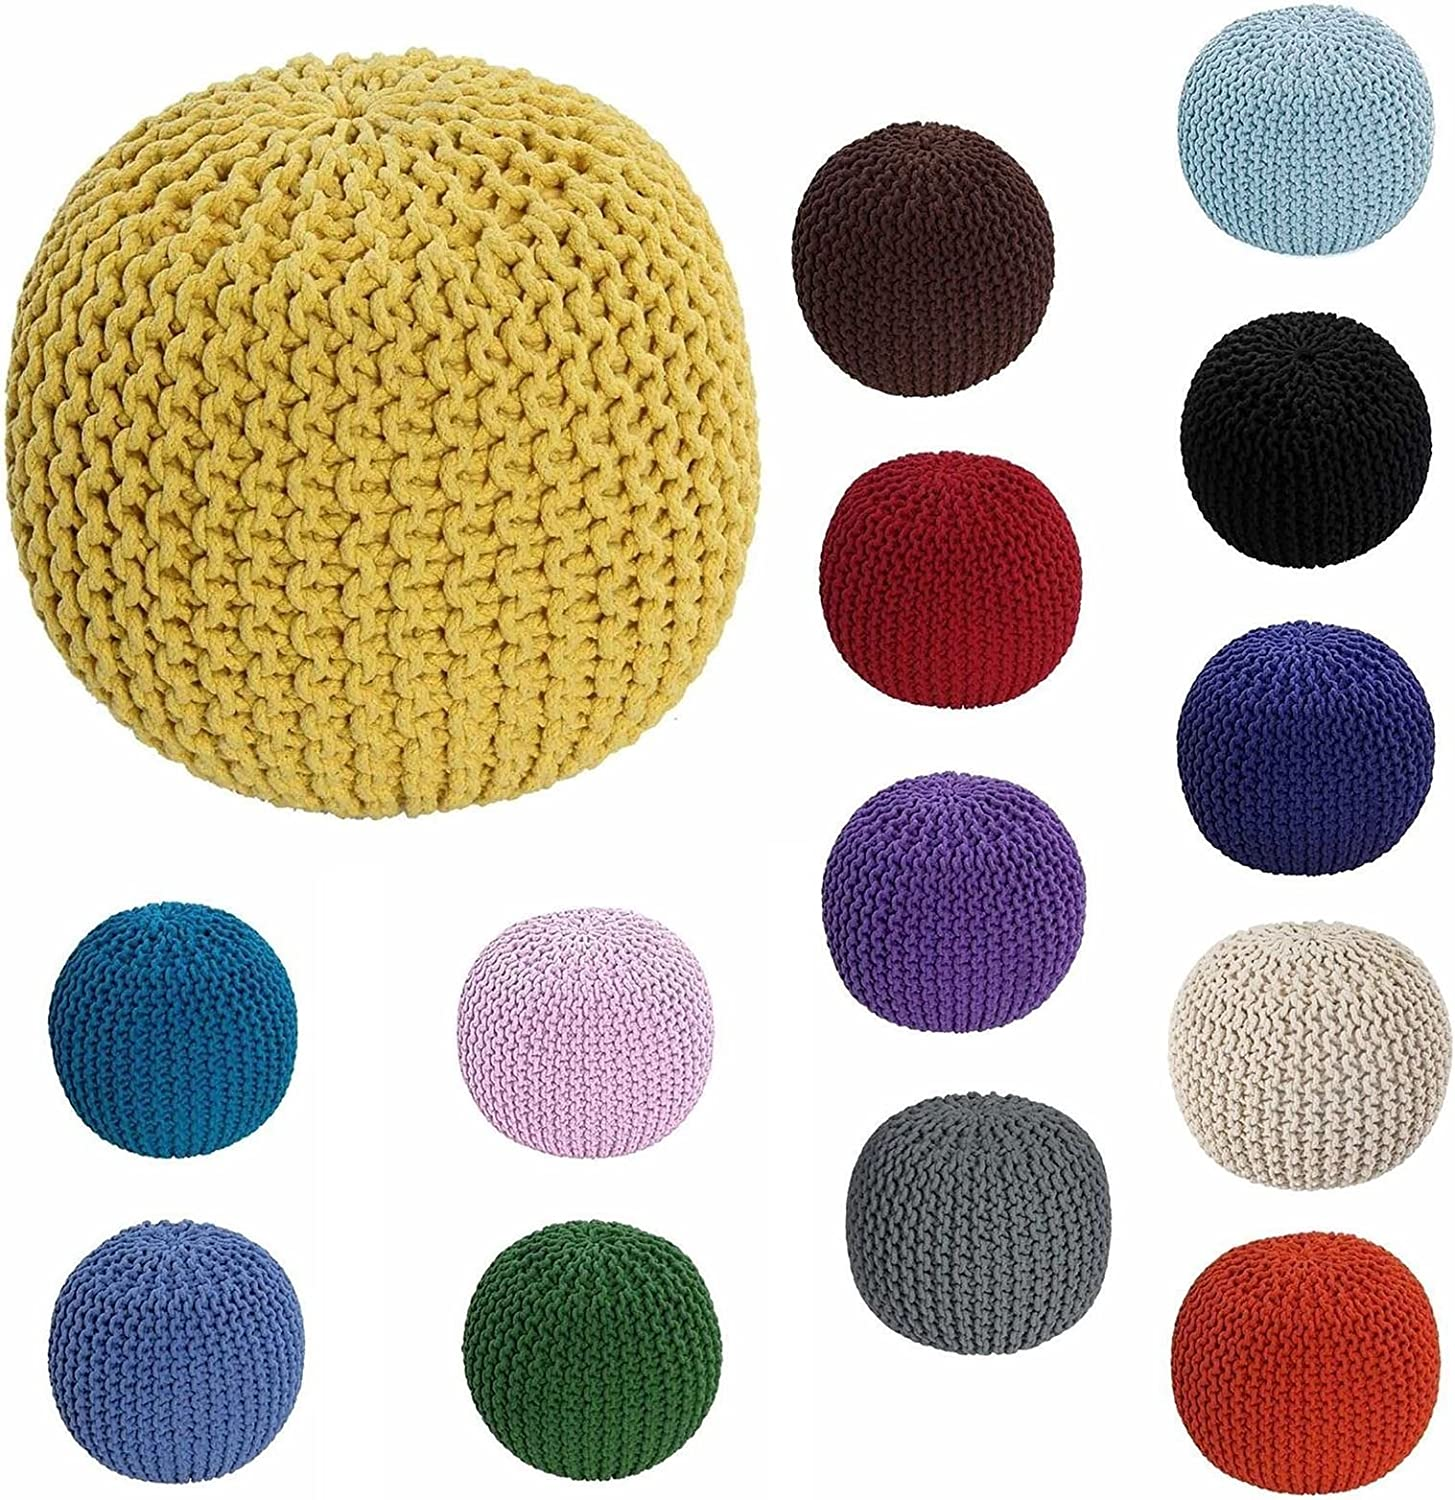 Artistic Fashionista Luxurious Cushioning Comfort And Plush Durability 100% Cotton Handmade KNITTED OTTOMAN POUFFE Foot Stool Seat Suitable For Children And Adults (Cream) Purple